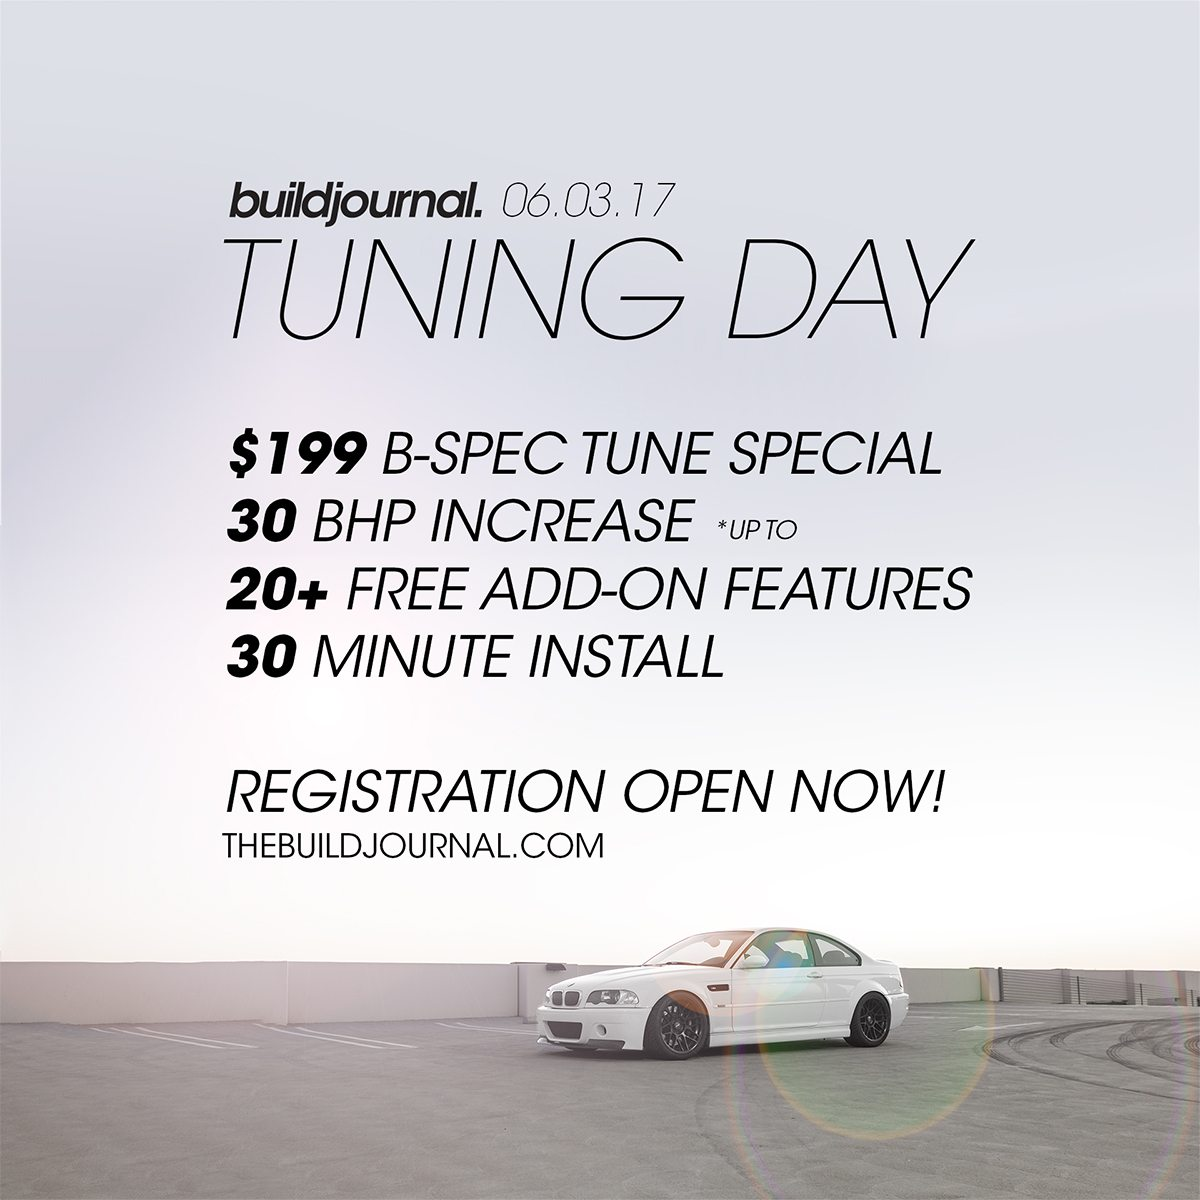 Buildjournal Tuning Day 2017